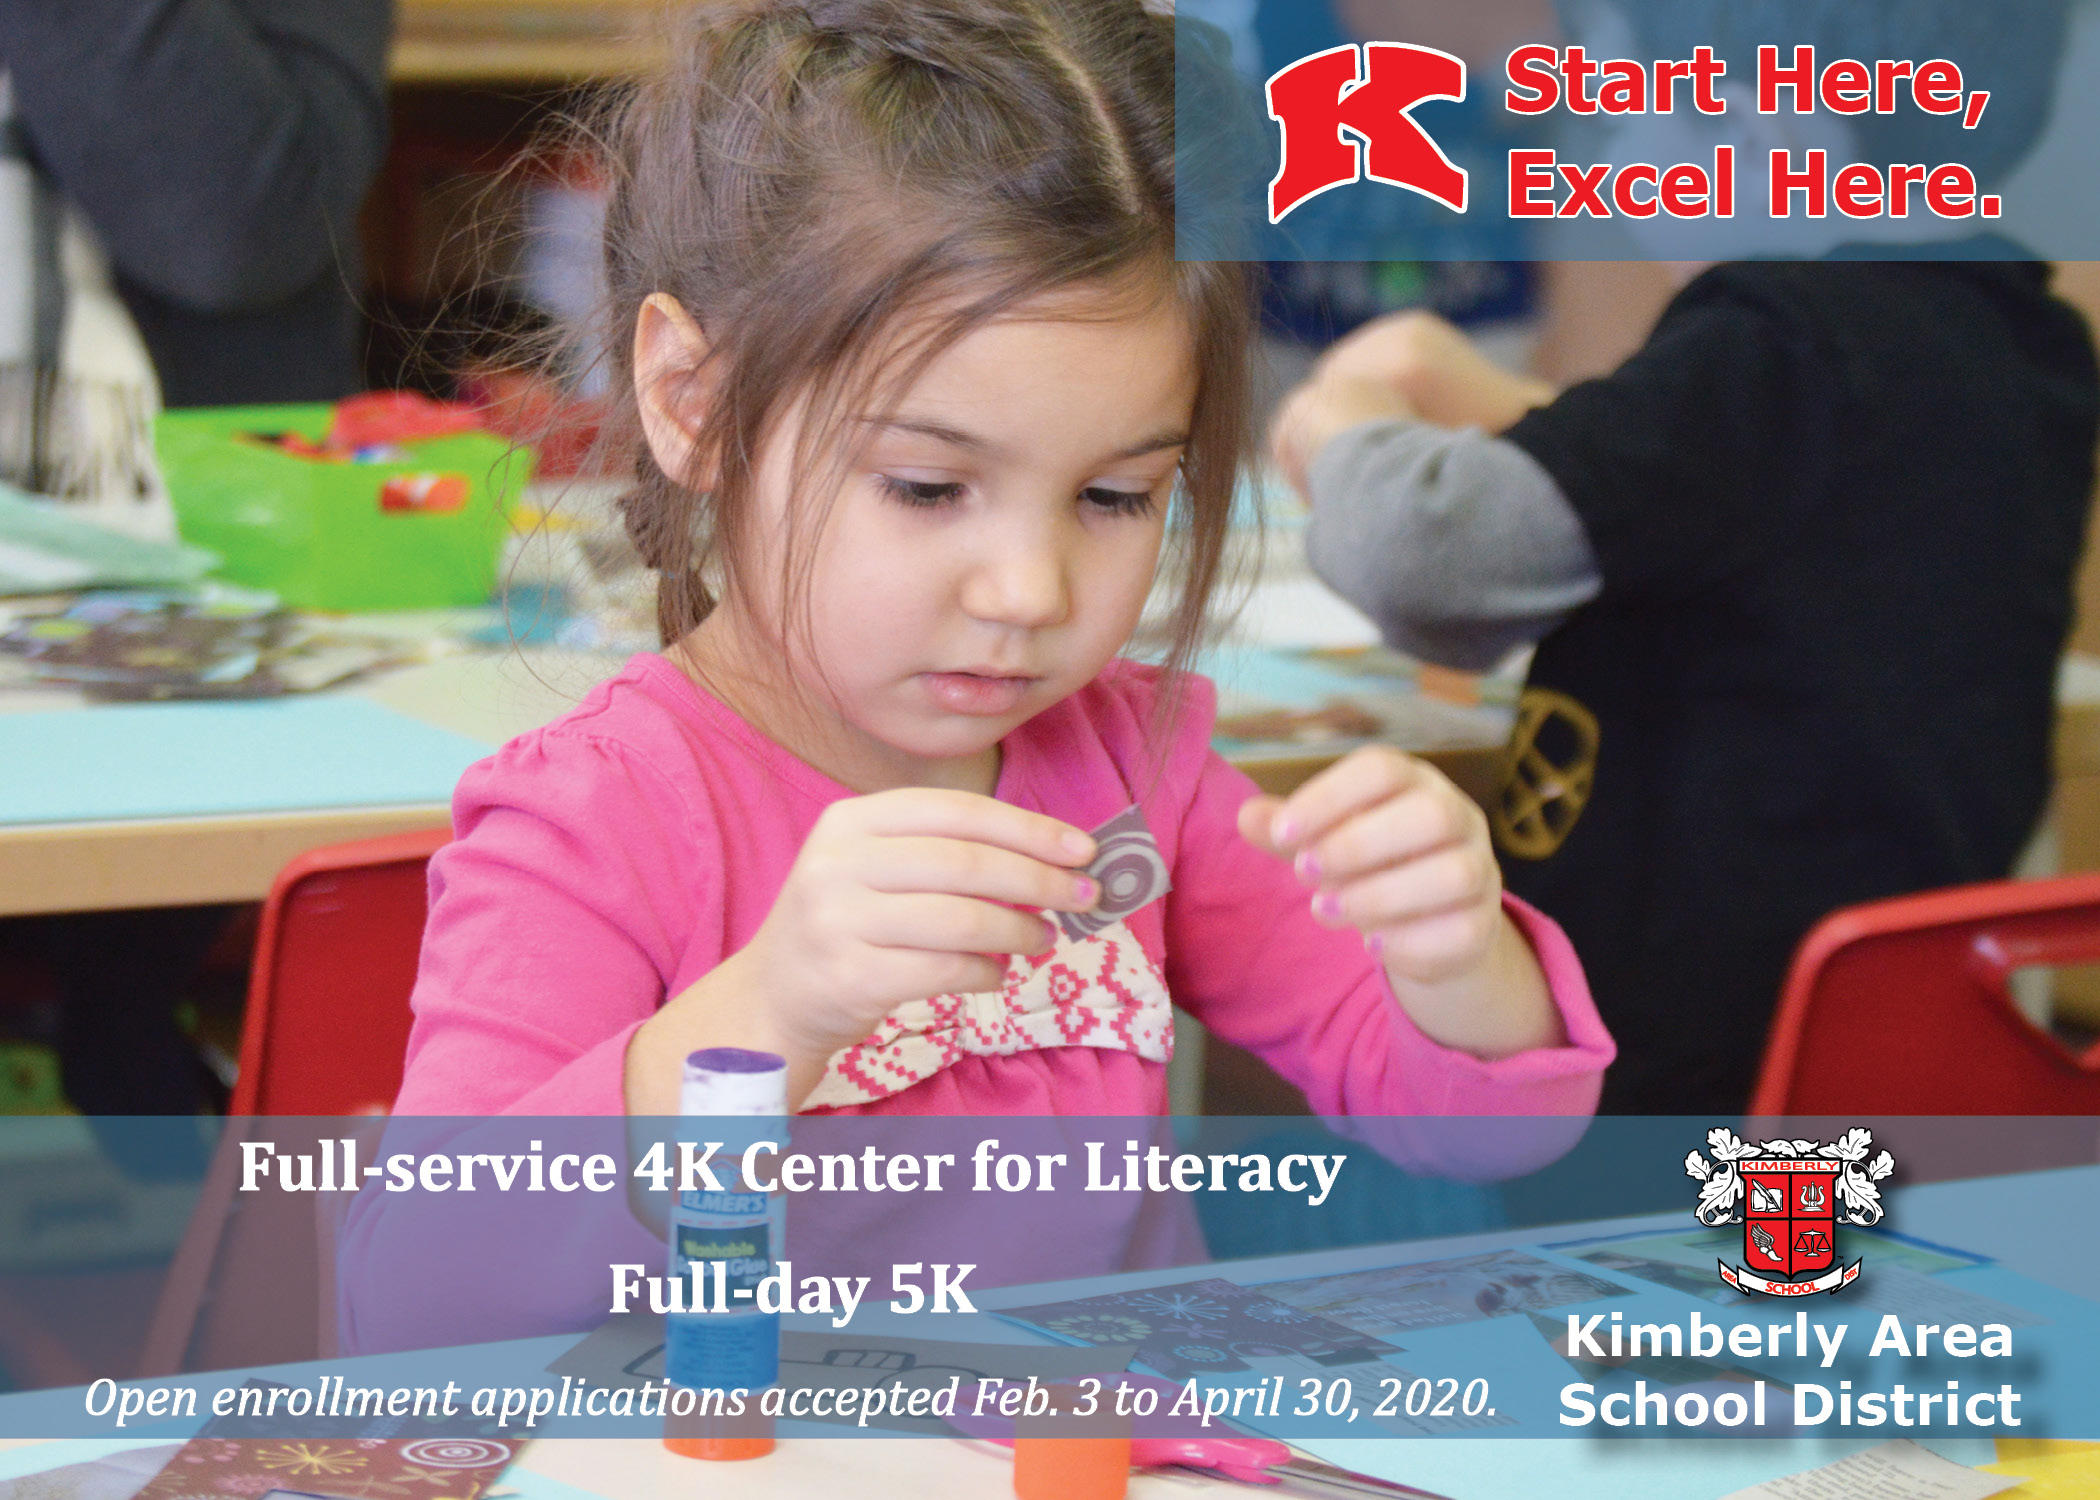 Start here excel here, full service 4K Center for Literacy and full-day 5k in Kimberly Area School District